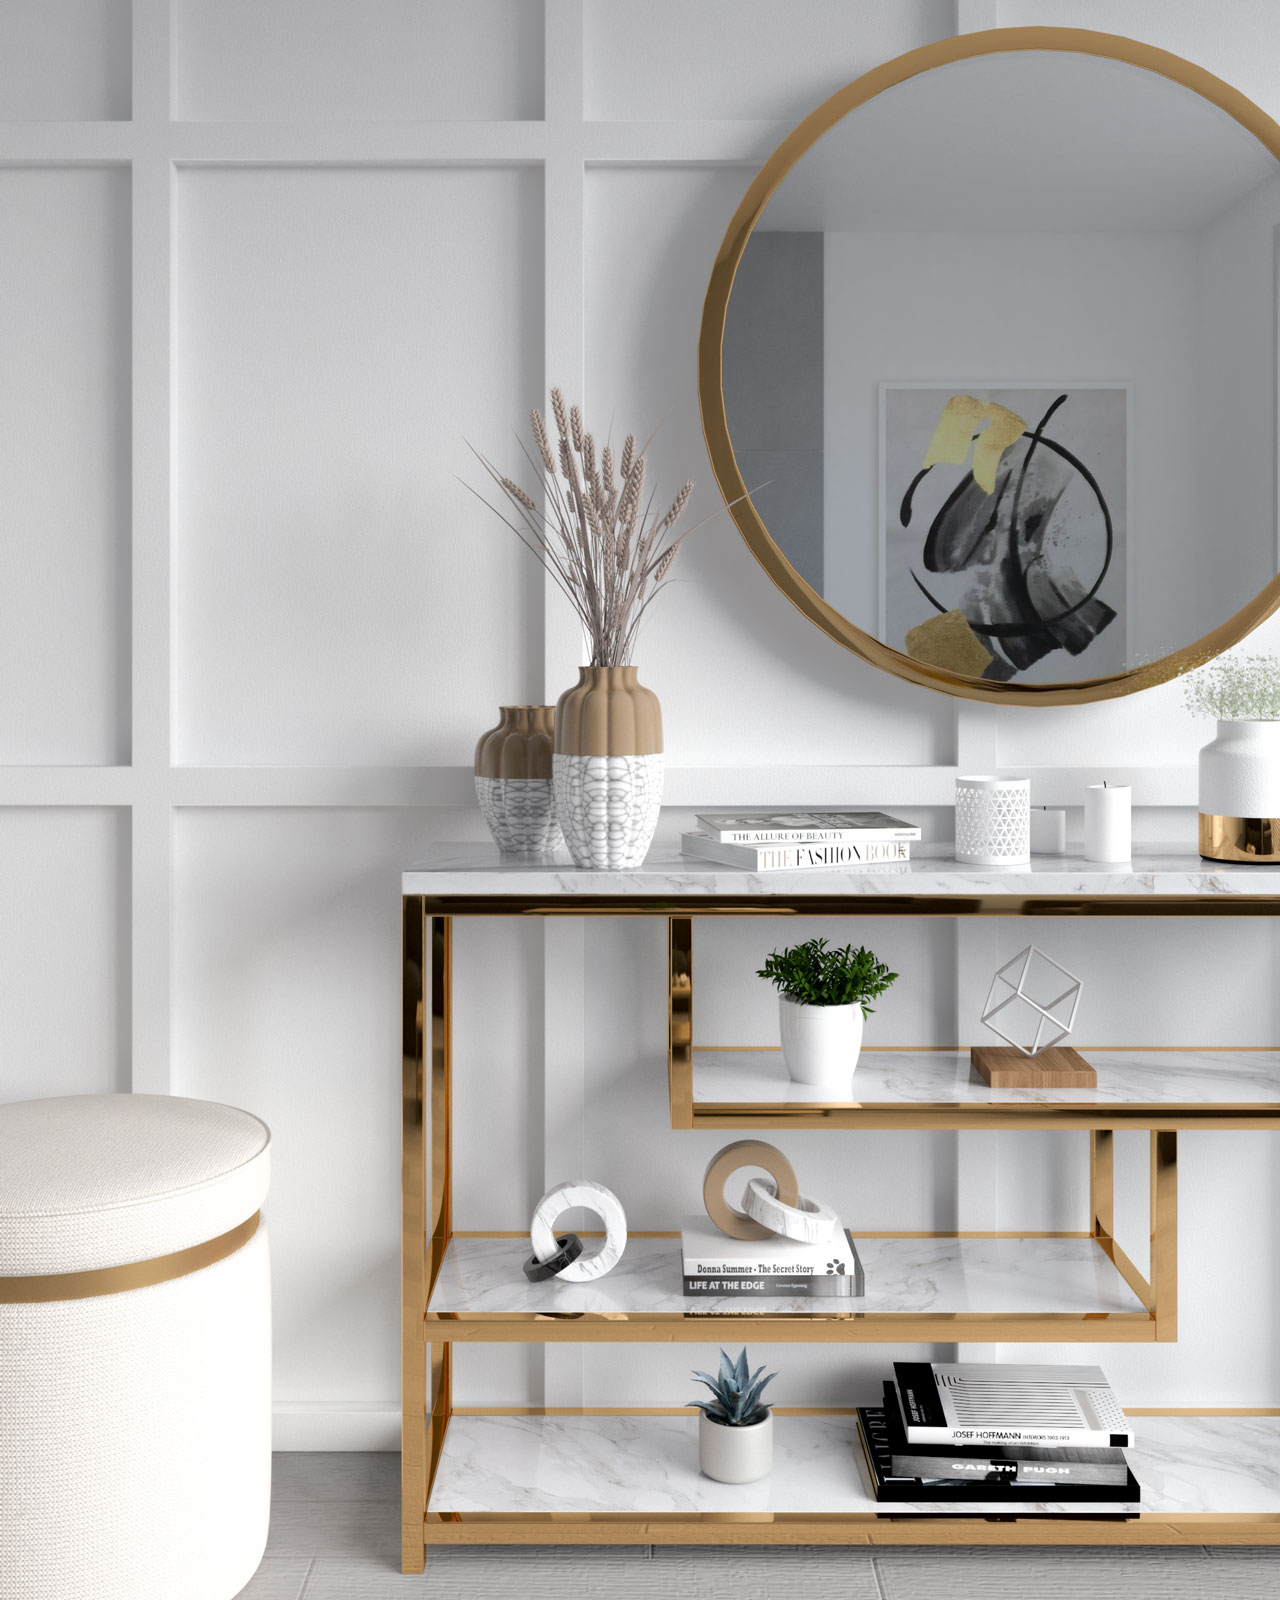 White wall with gold accents